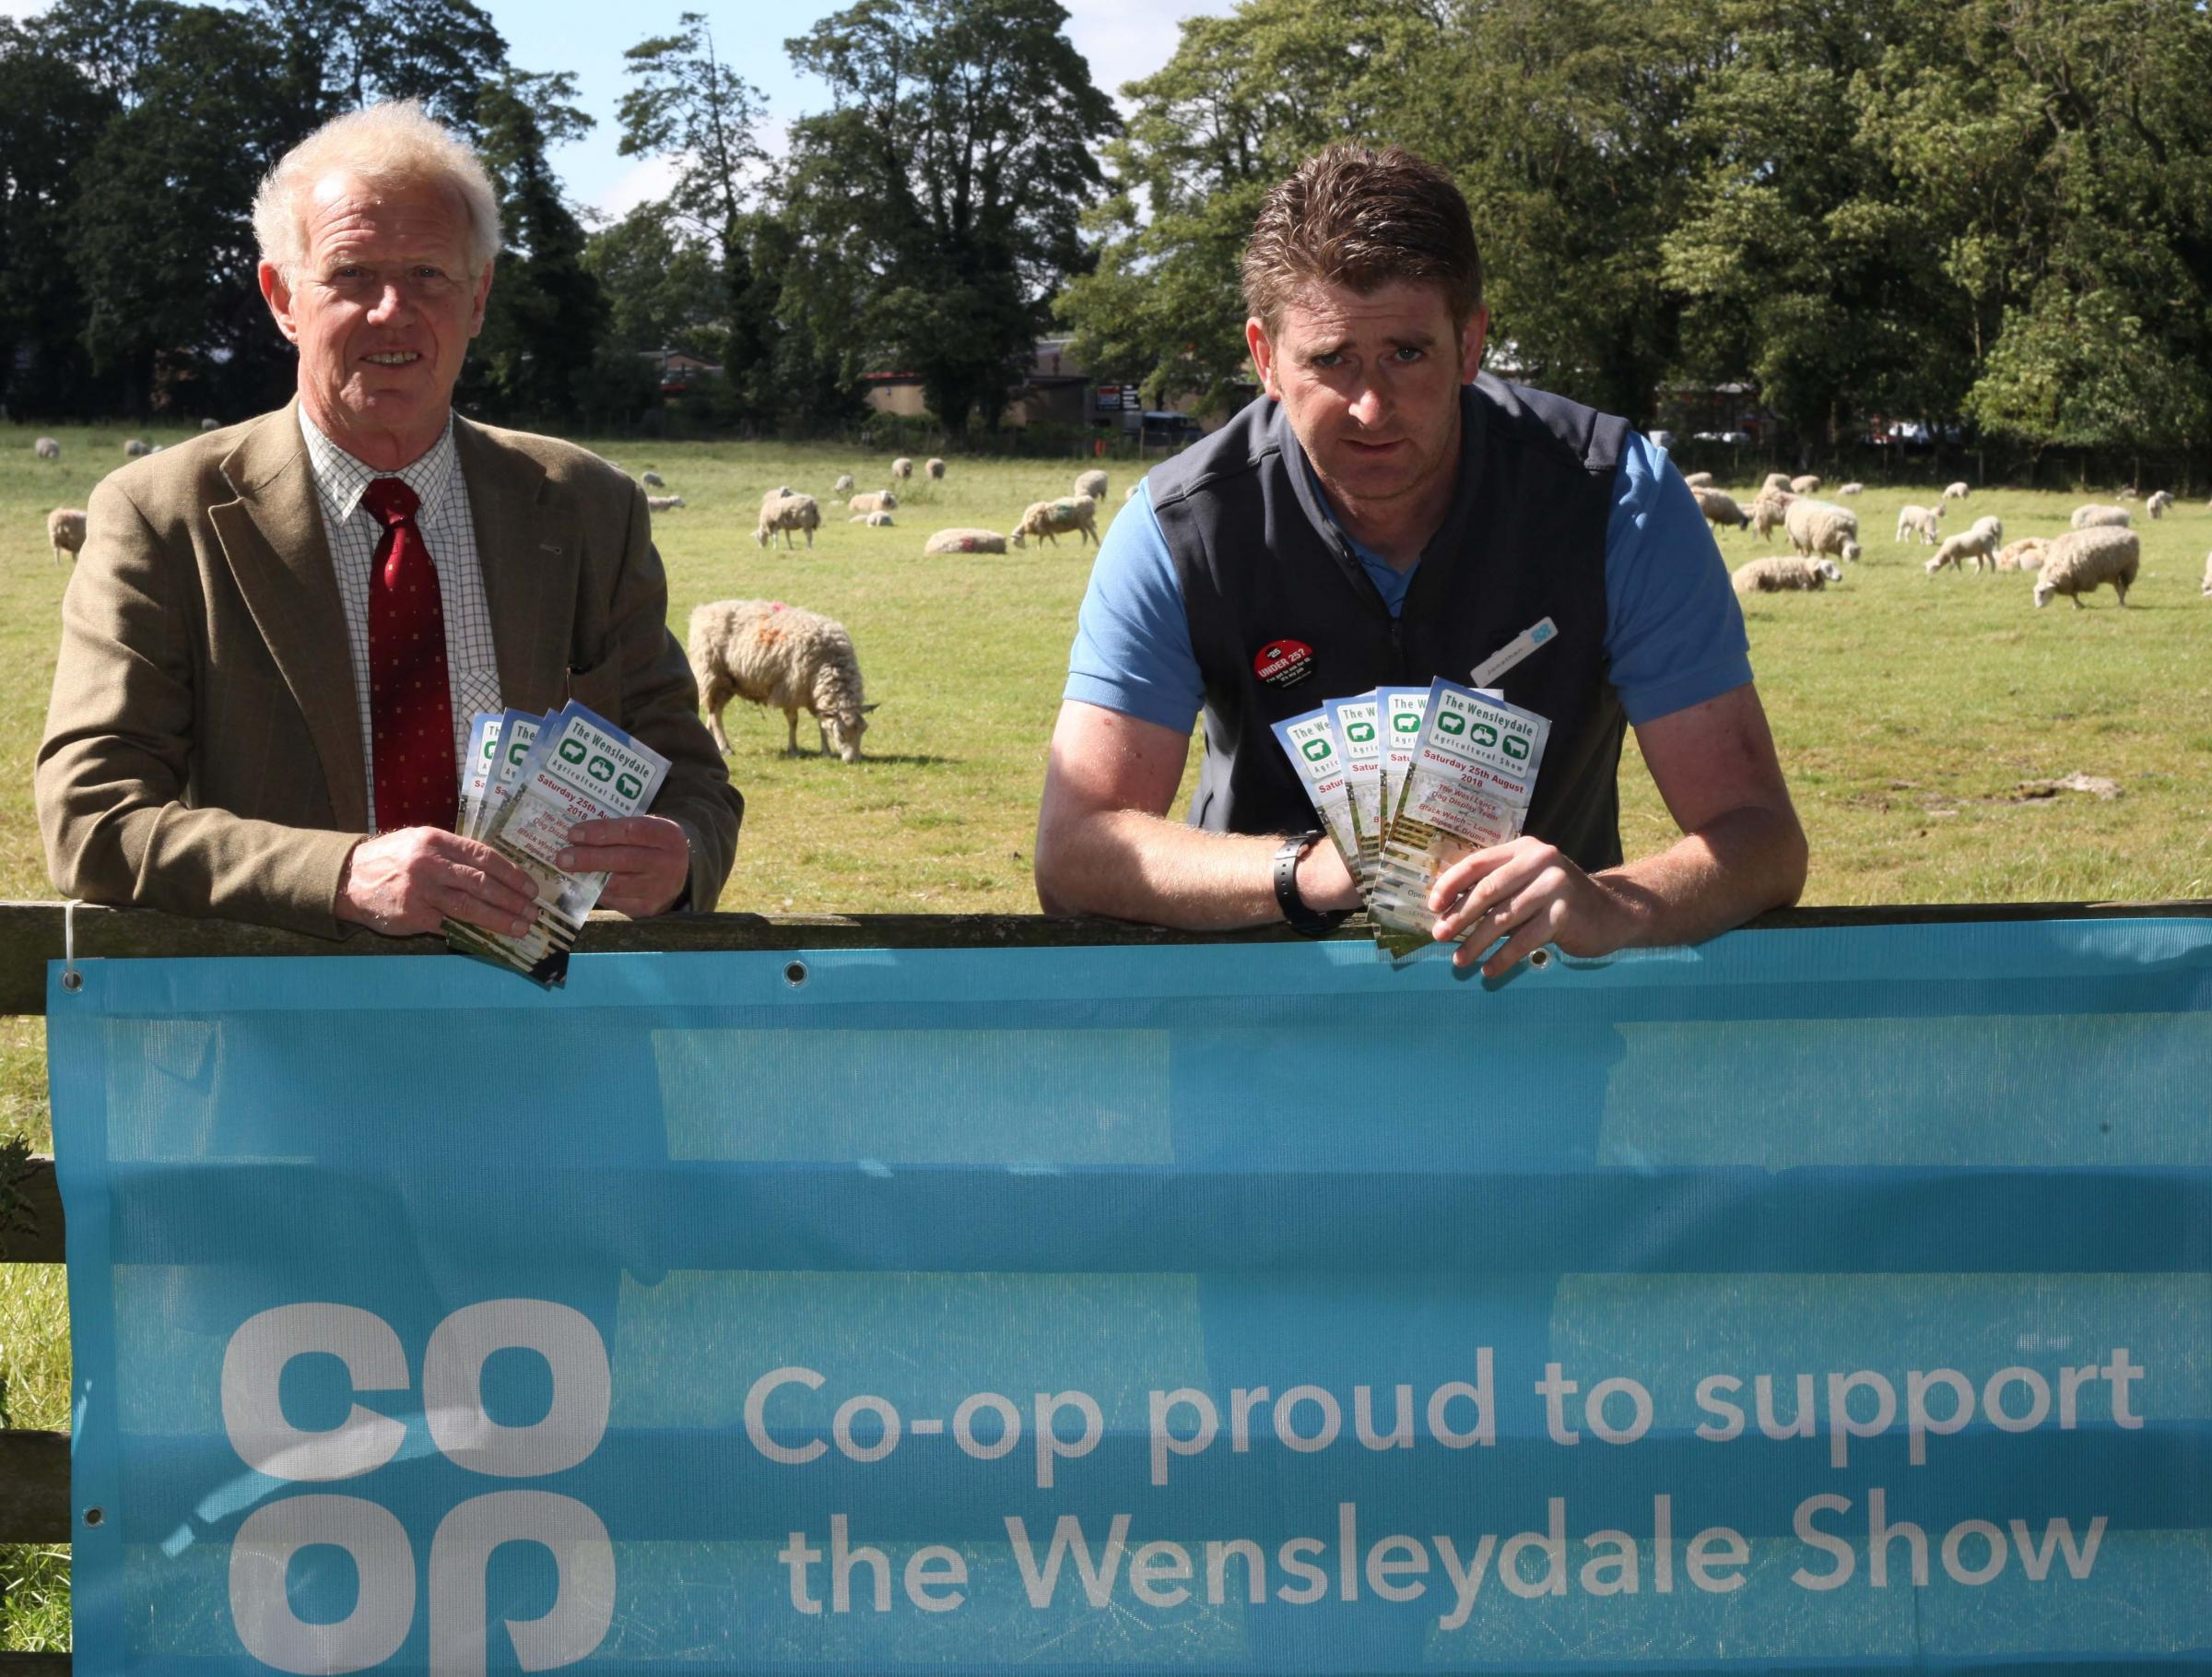 Mike Warden Chairman of the Wensleydale Show with Jonathan Barker Manger of the Leyburn Cooperative branch